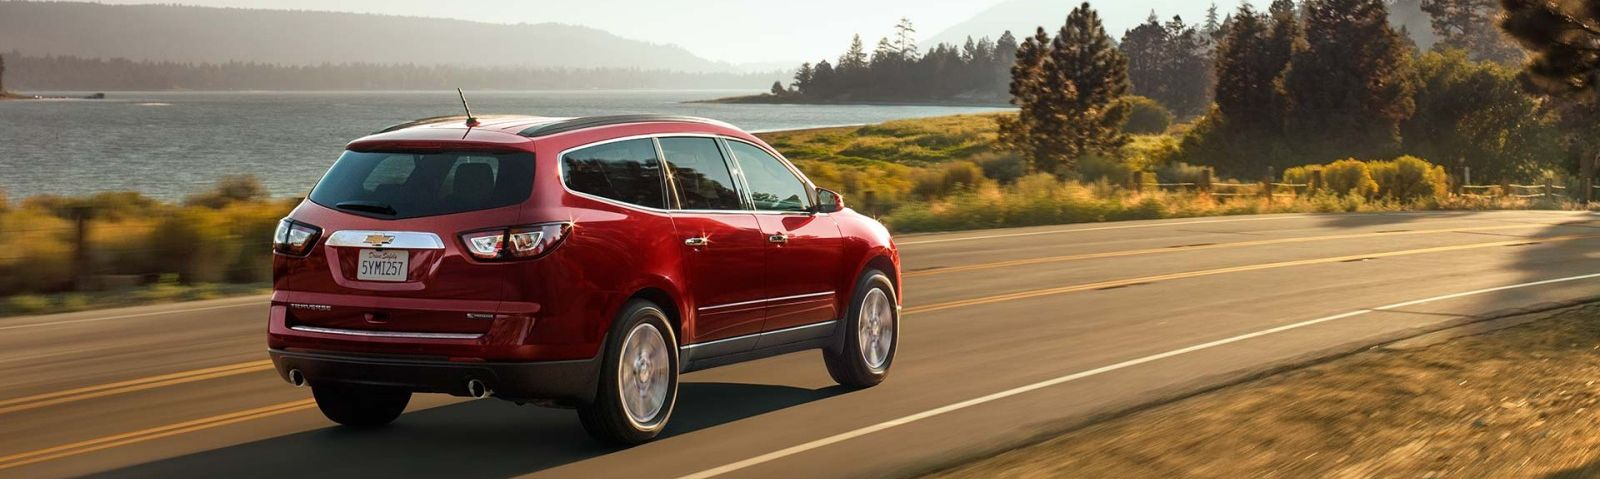 2017 Chevrolet Traverse For Sale Near Newark, DE